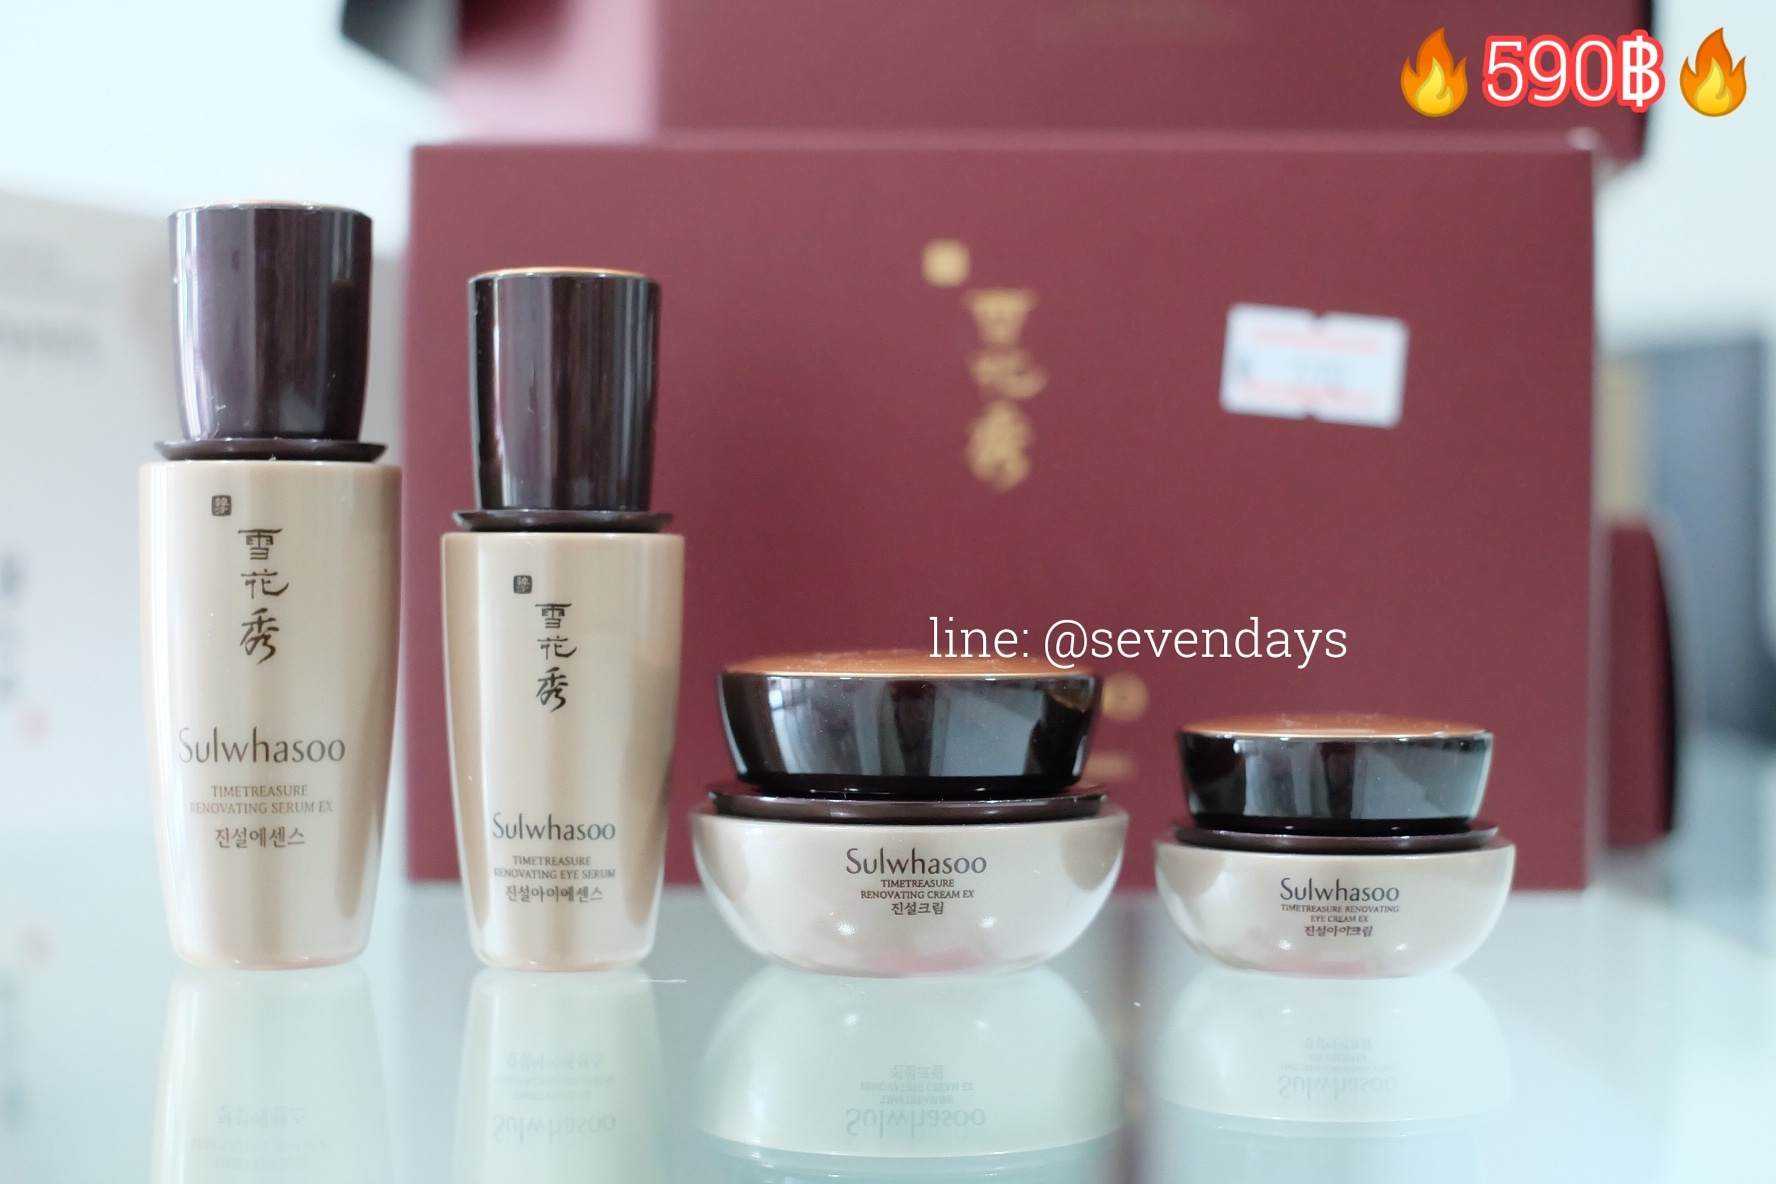 Sevendays Sulwhasoo Timetreasure Kit 4 Items Time Treasure Renovating Cream Ex 8ml 8 Ml